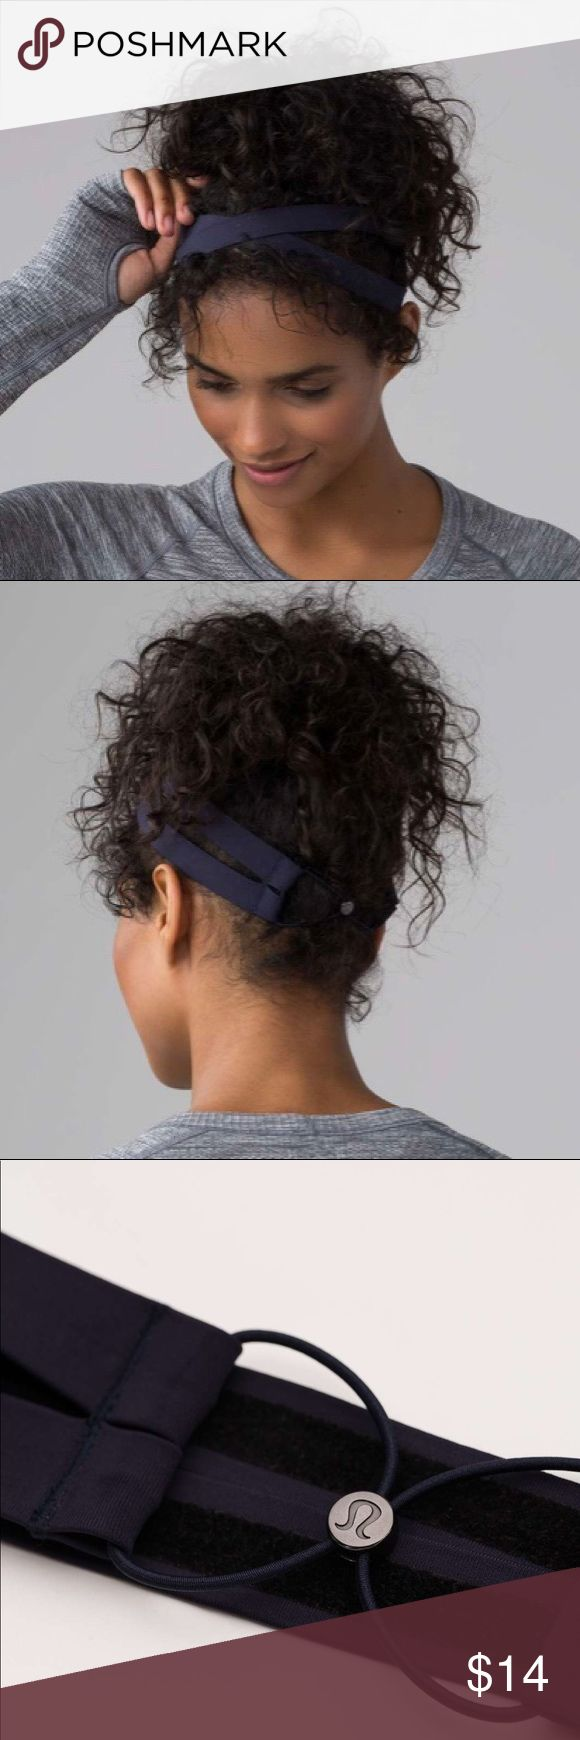 LULU LEMON NWT Navy Cross Sweat Headband BRAND NEW LULU LEMON Cross Sweat Headband in Navy. In Perfect/Brand new condition, never worn or even tried on. Very stretchy and cute! (Was a gift and I have the same one in a different color) lululemon athletica Accessories